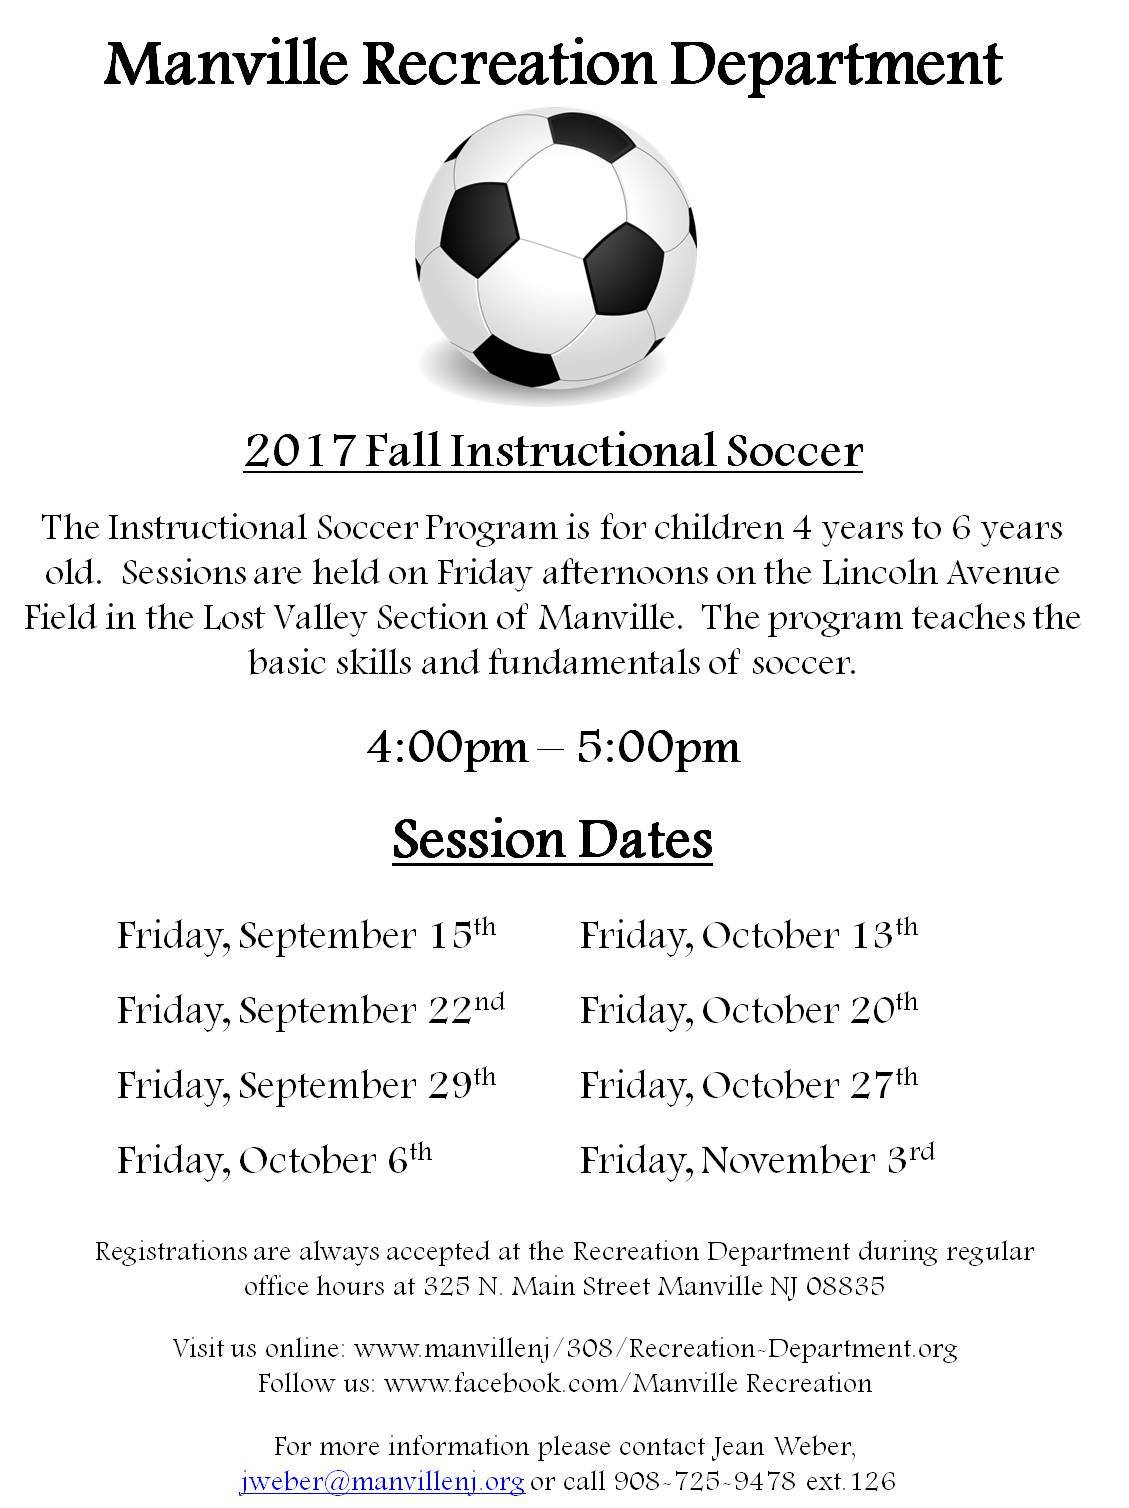 2017 Fall Instructional Soccer